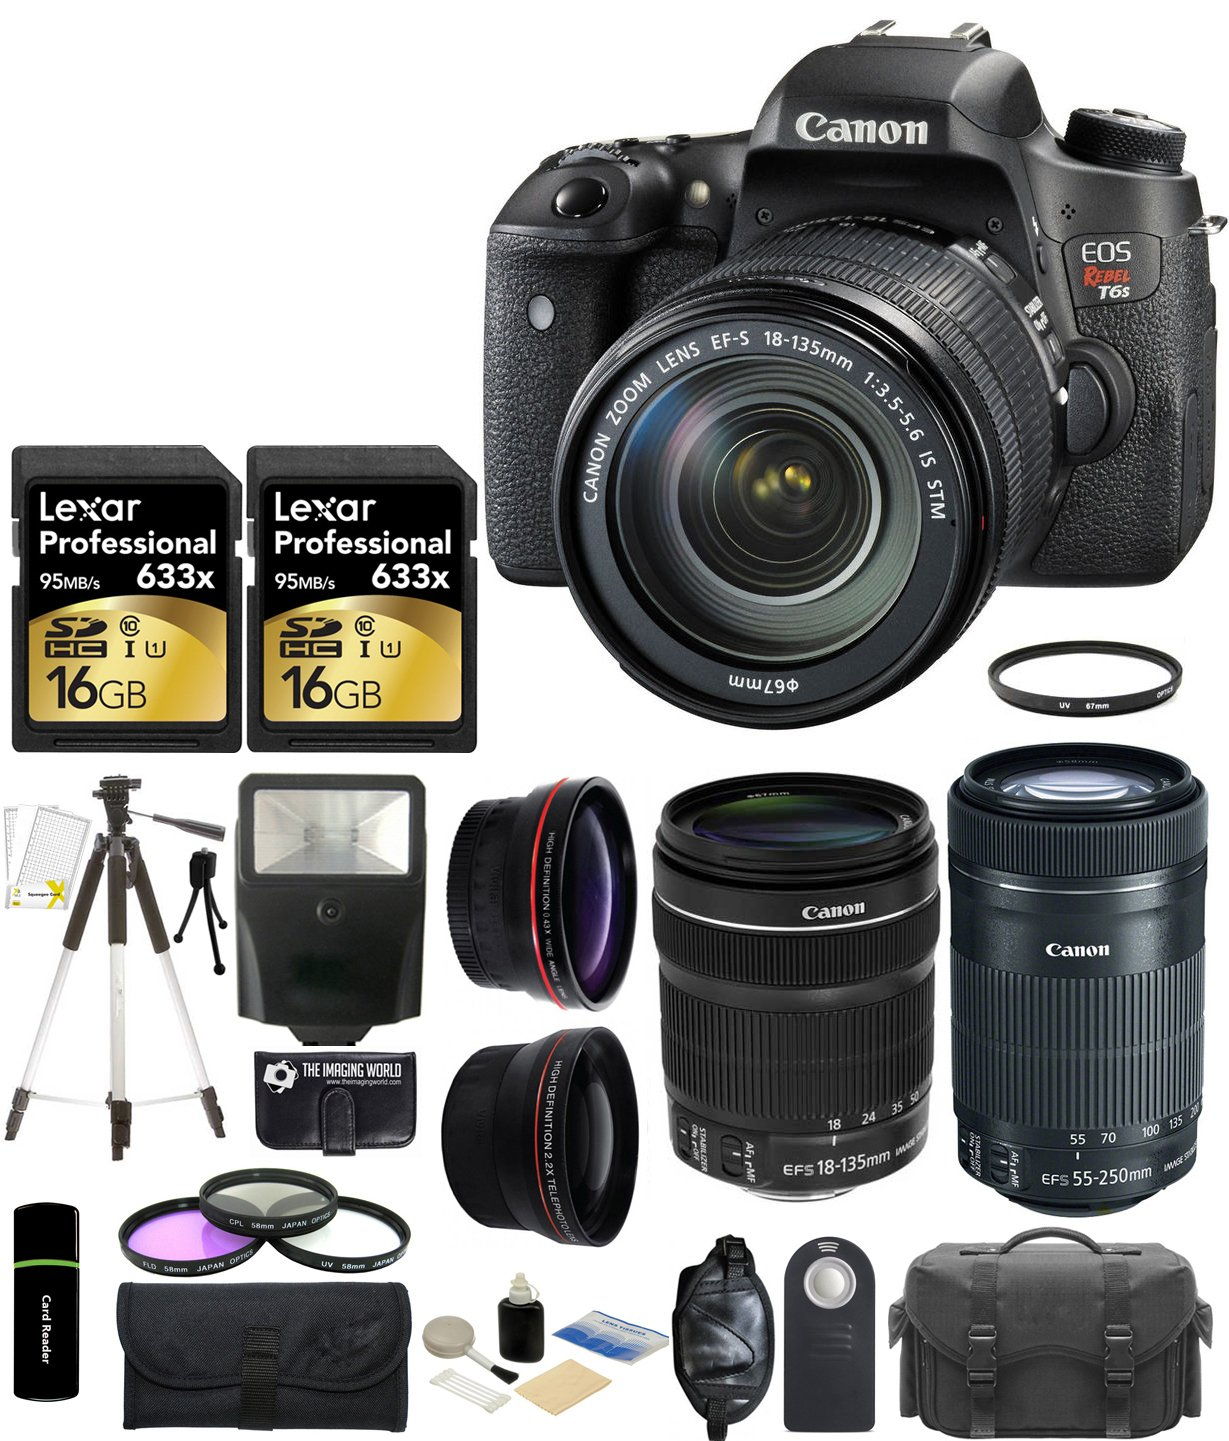 Canon EOS Rebel T6s 24.2MP CMOS Digital SLR Camera with EF-S 18-135mm IS STM Lens + Canon EF-S 55-250mm IS STM Lens + 58mm Wide-Angle + Telephoto Lenses + 2x 16GB Cards + Case + Flash + Tripod + Grip + Filter Kit and More - 32GB Accessories Bundle